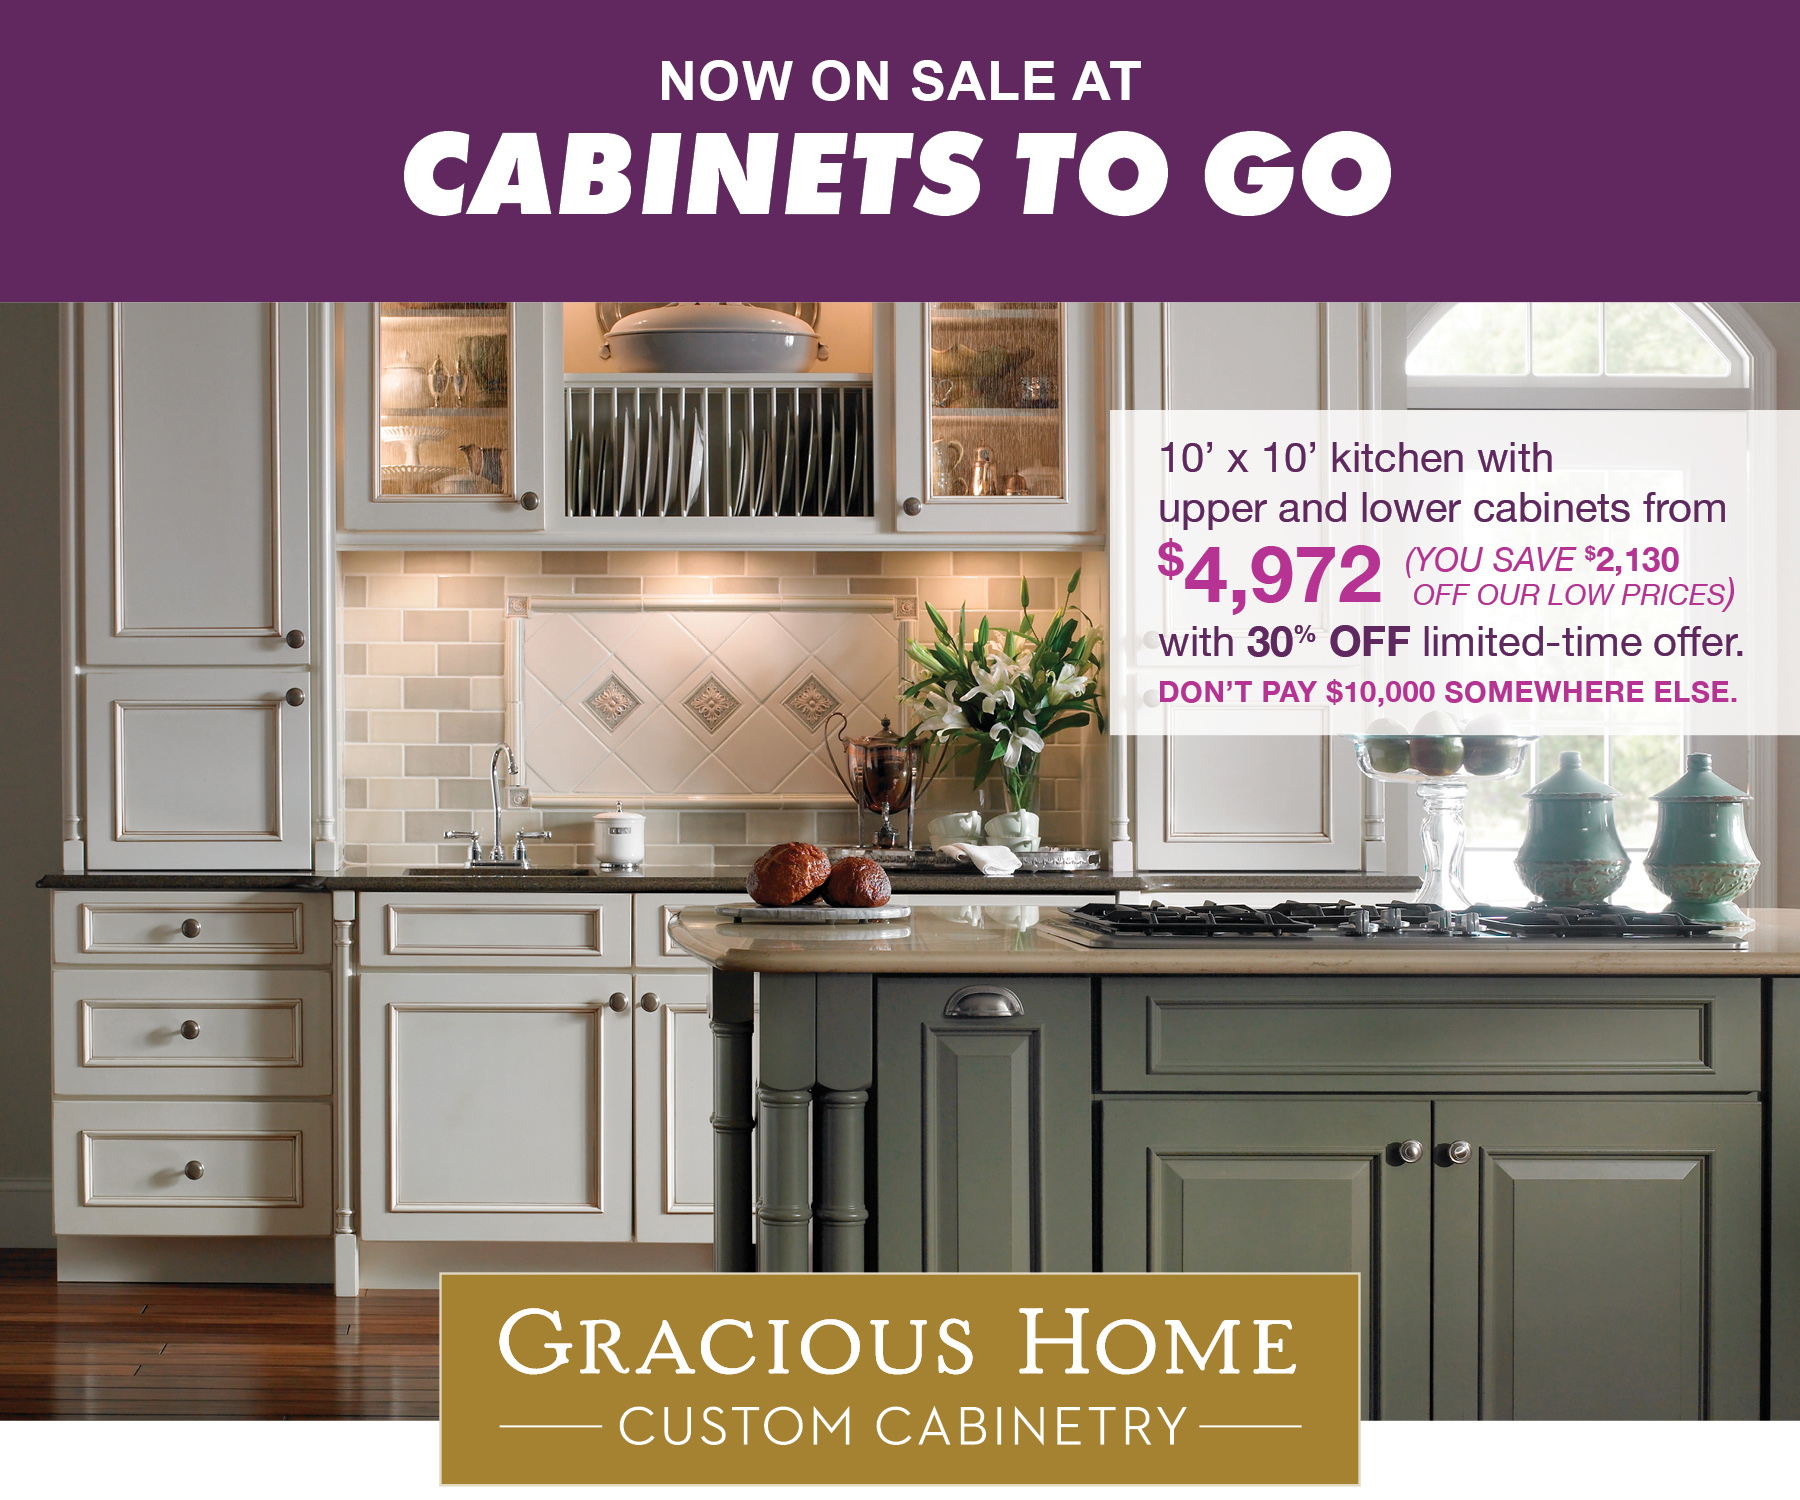 Gracious Home Cabinetry